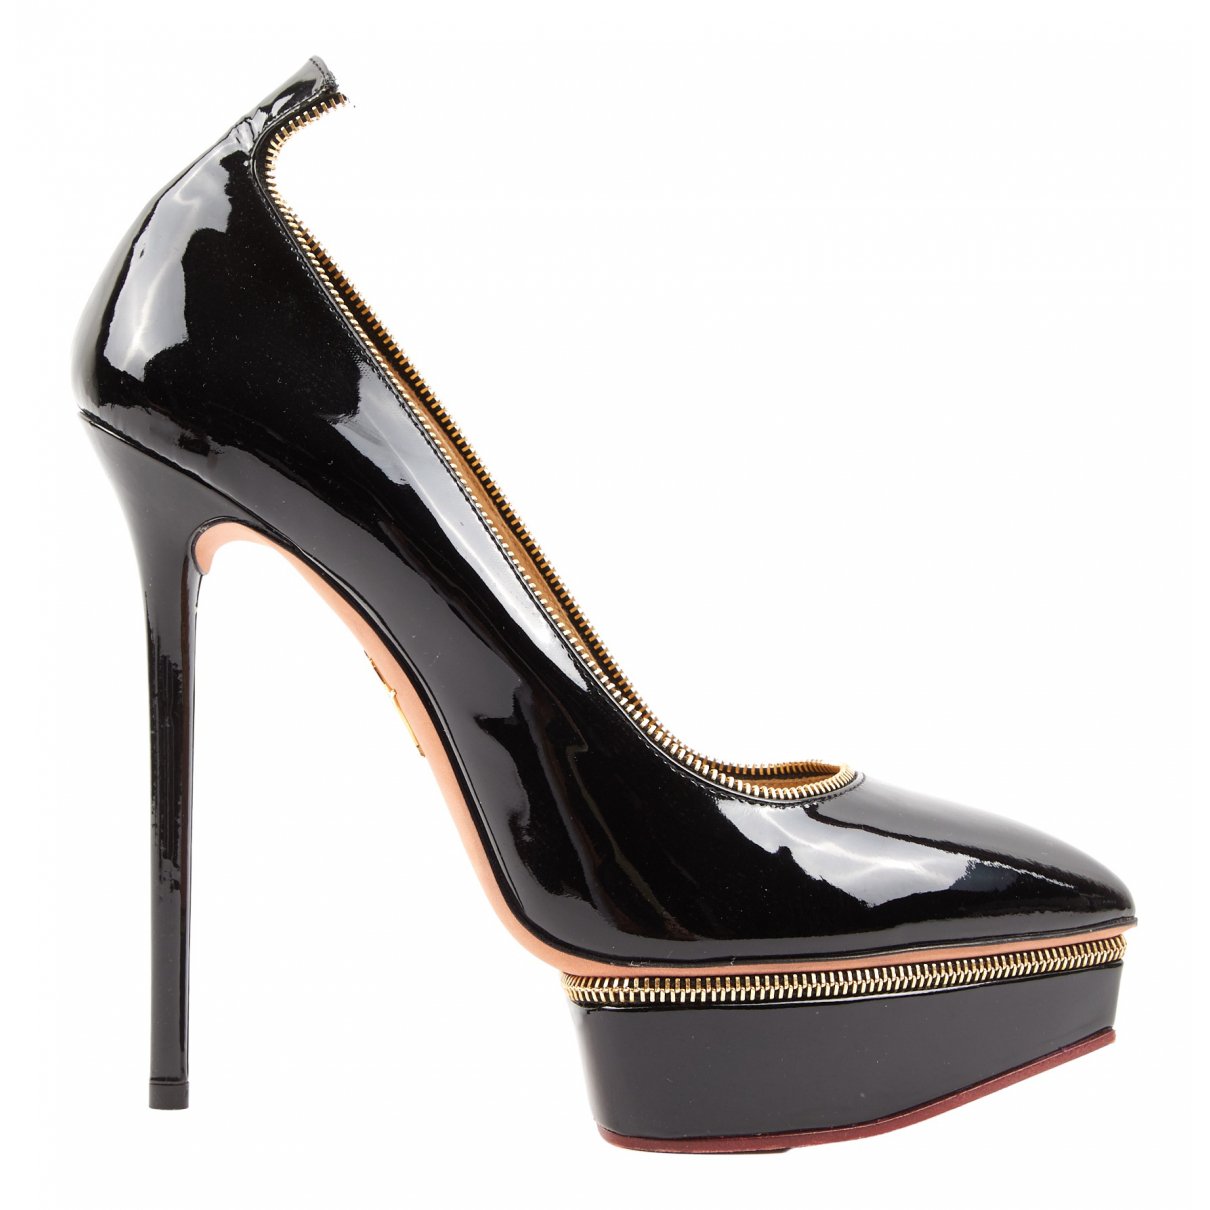 Charlotte Olympia N Black Patent leather Heels for Women 39 EU